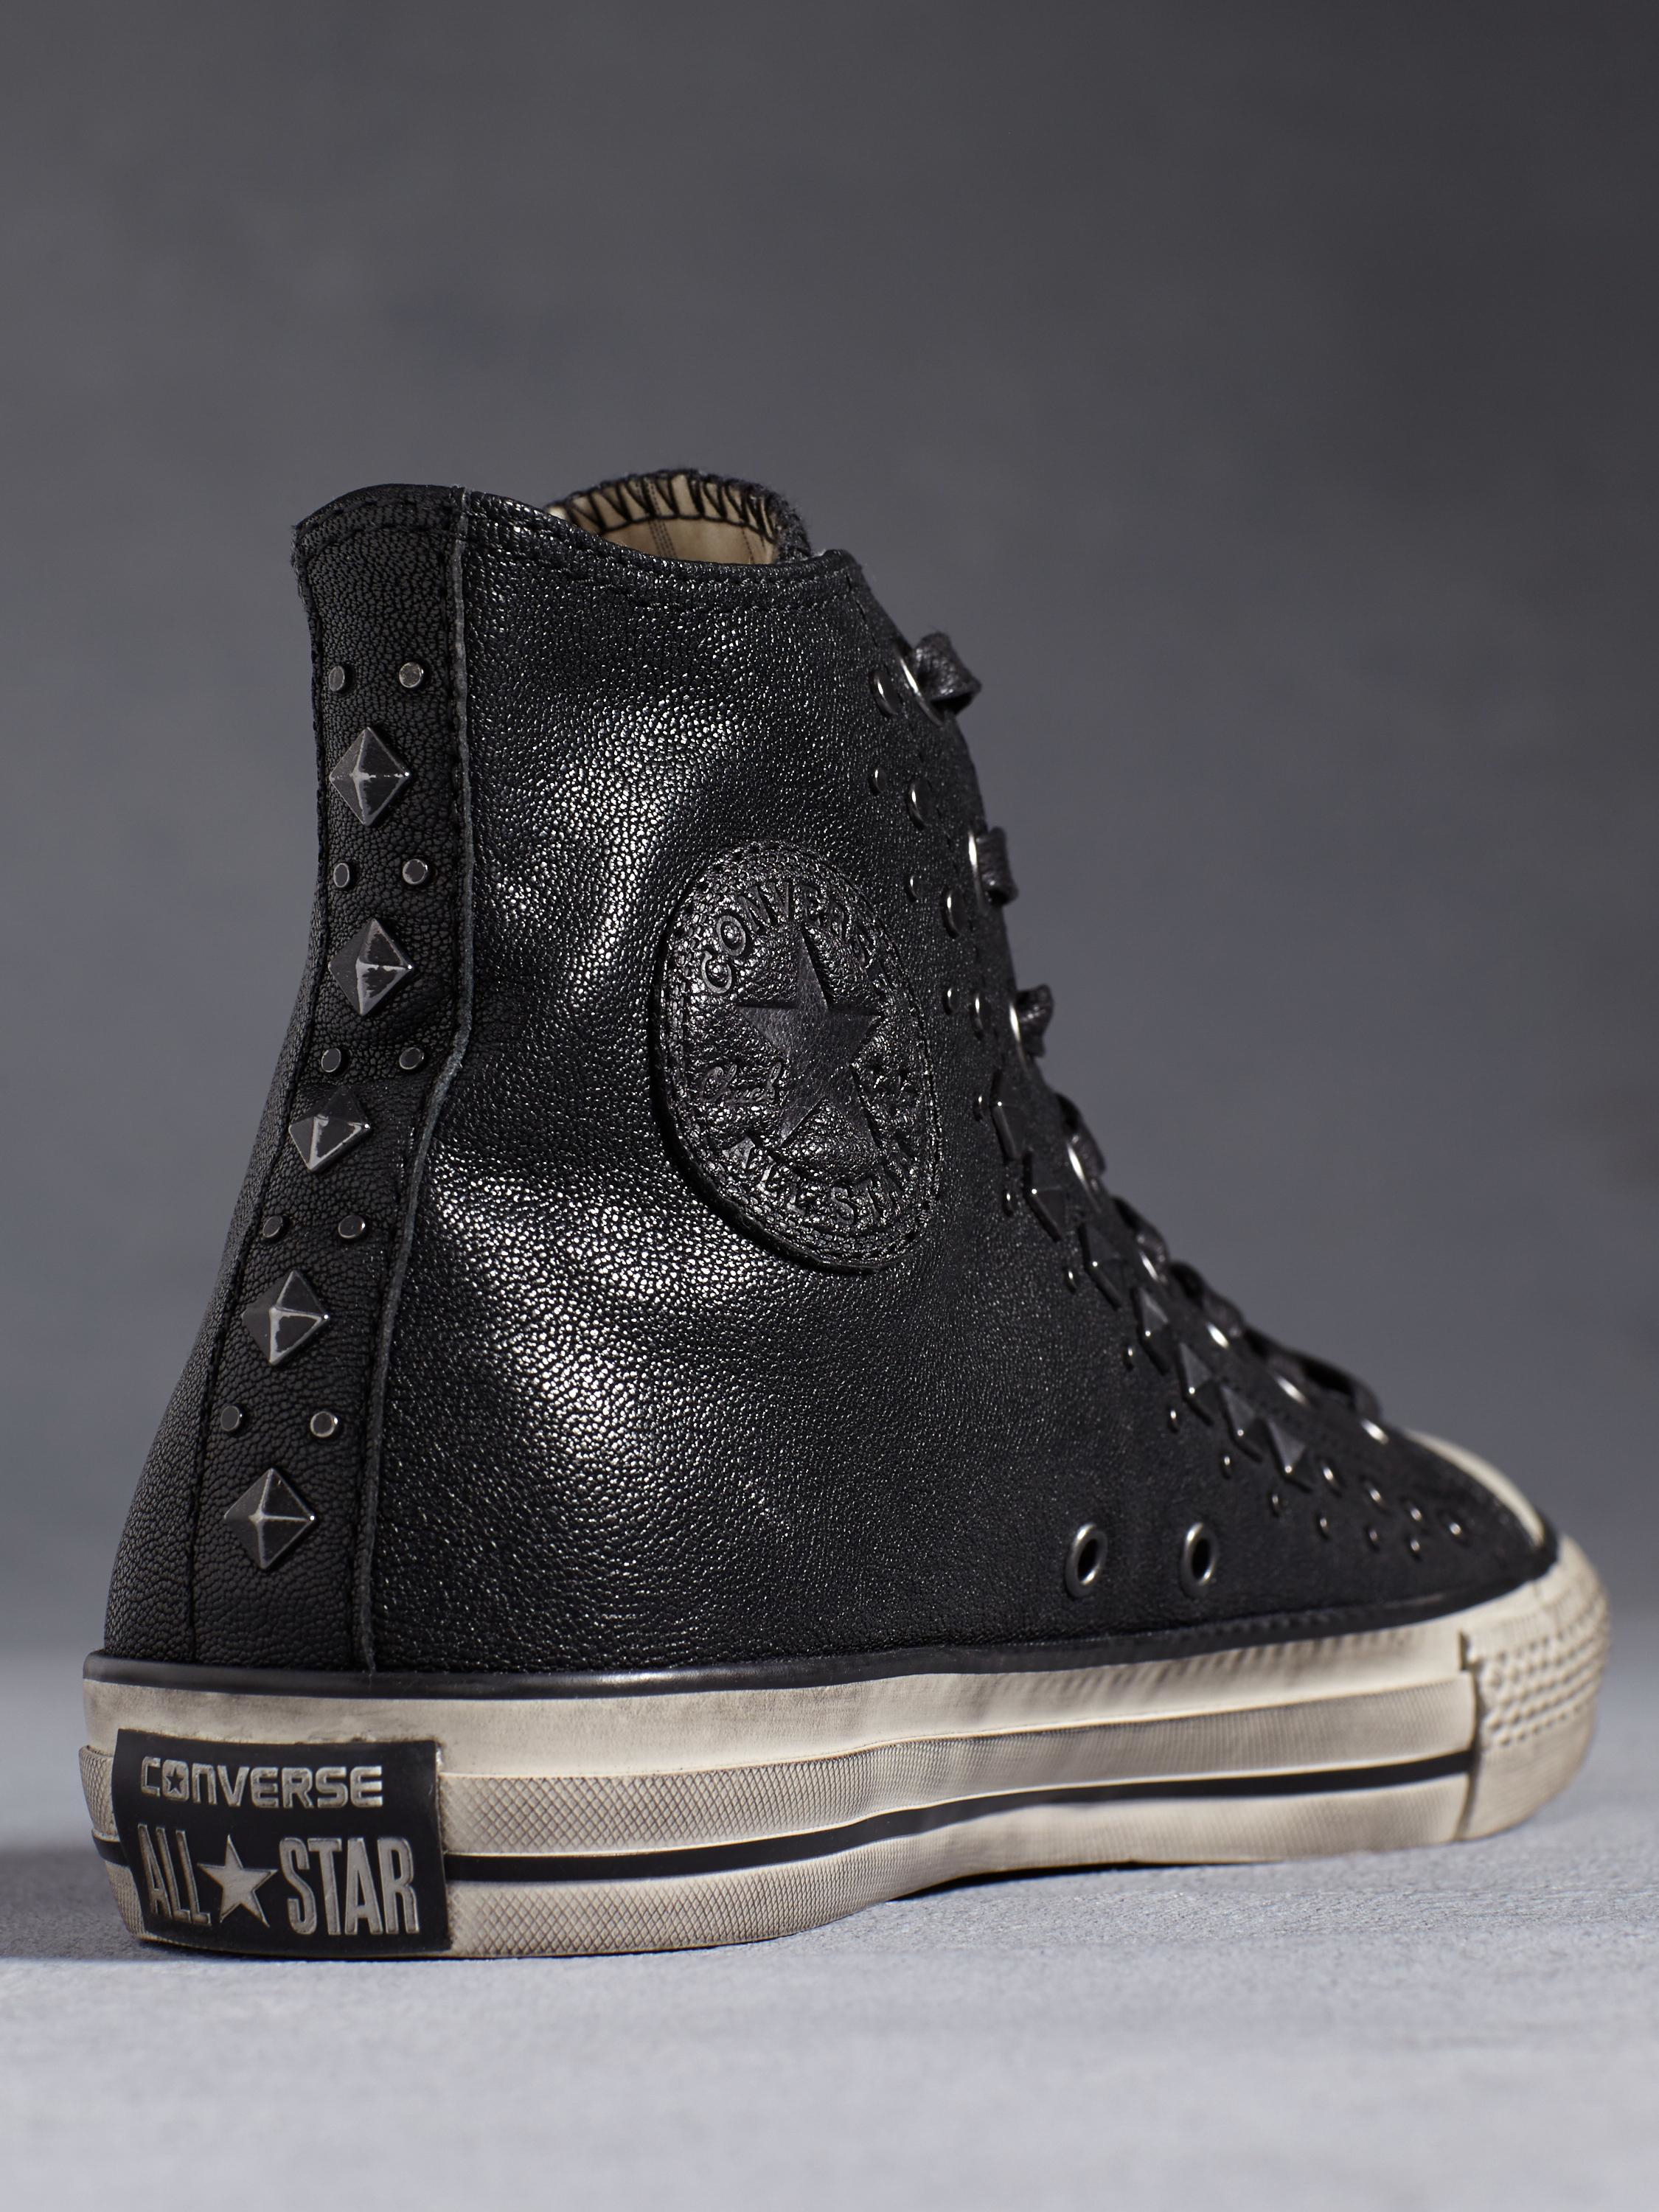 9deeebcdc21f ... Lyst - John Varvatos Chuck Taylor Studded High Top in Black for Men ...